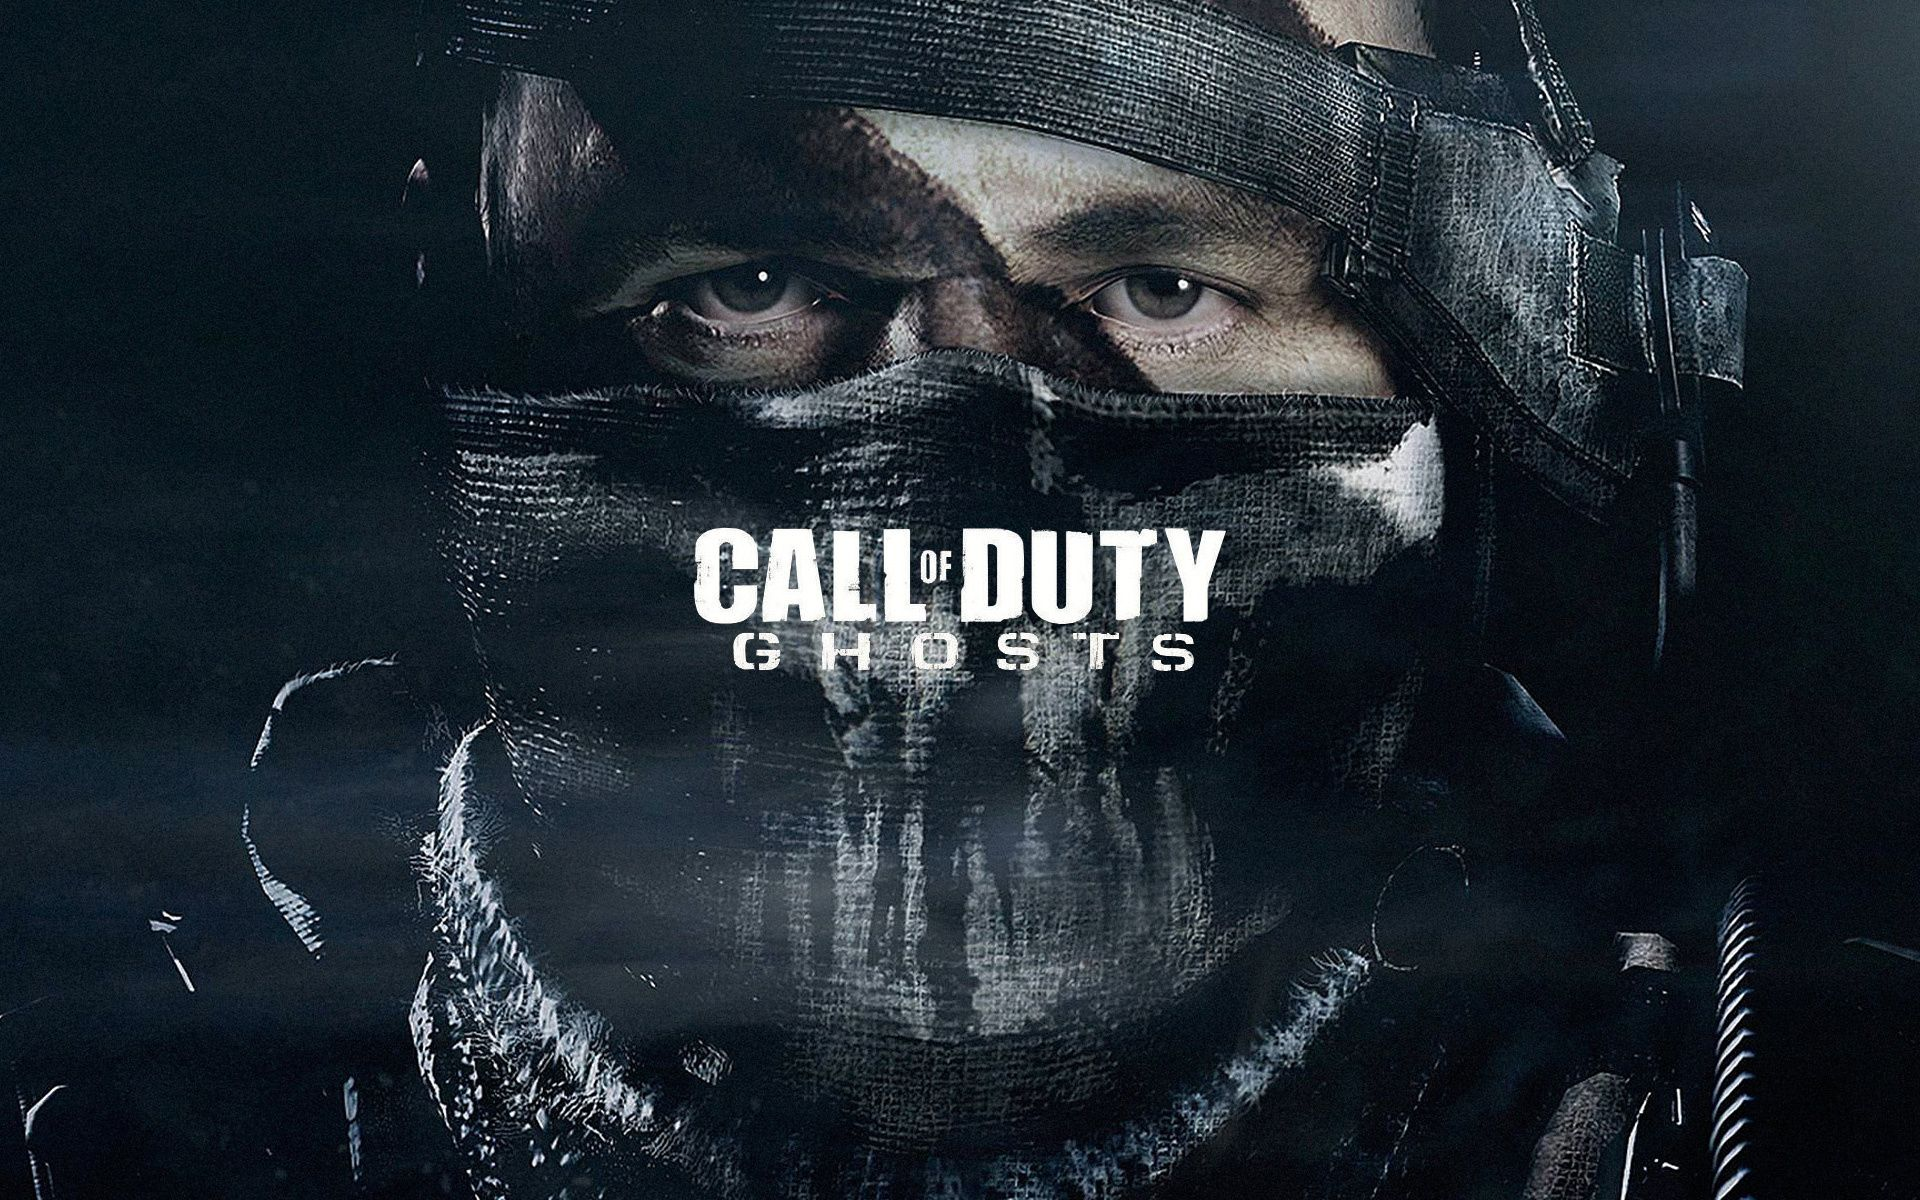 Call Of Duty Ghost Soldier HD Wallpaper - http://www.gbwallpapers ...